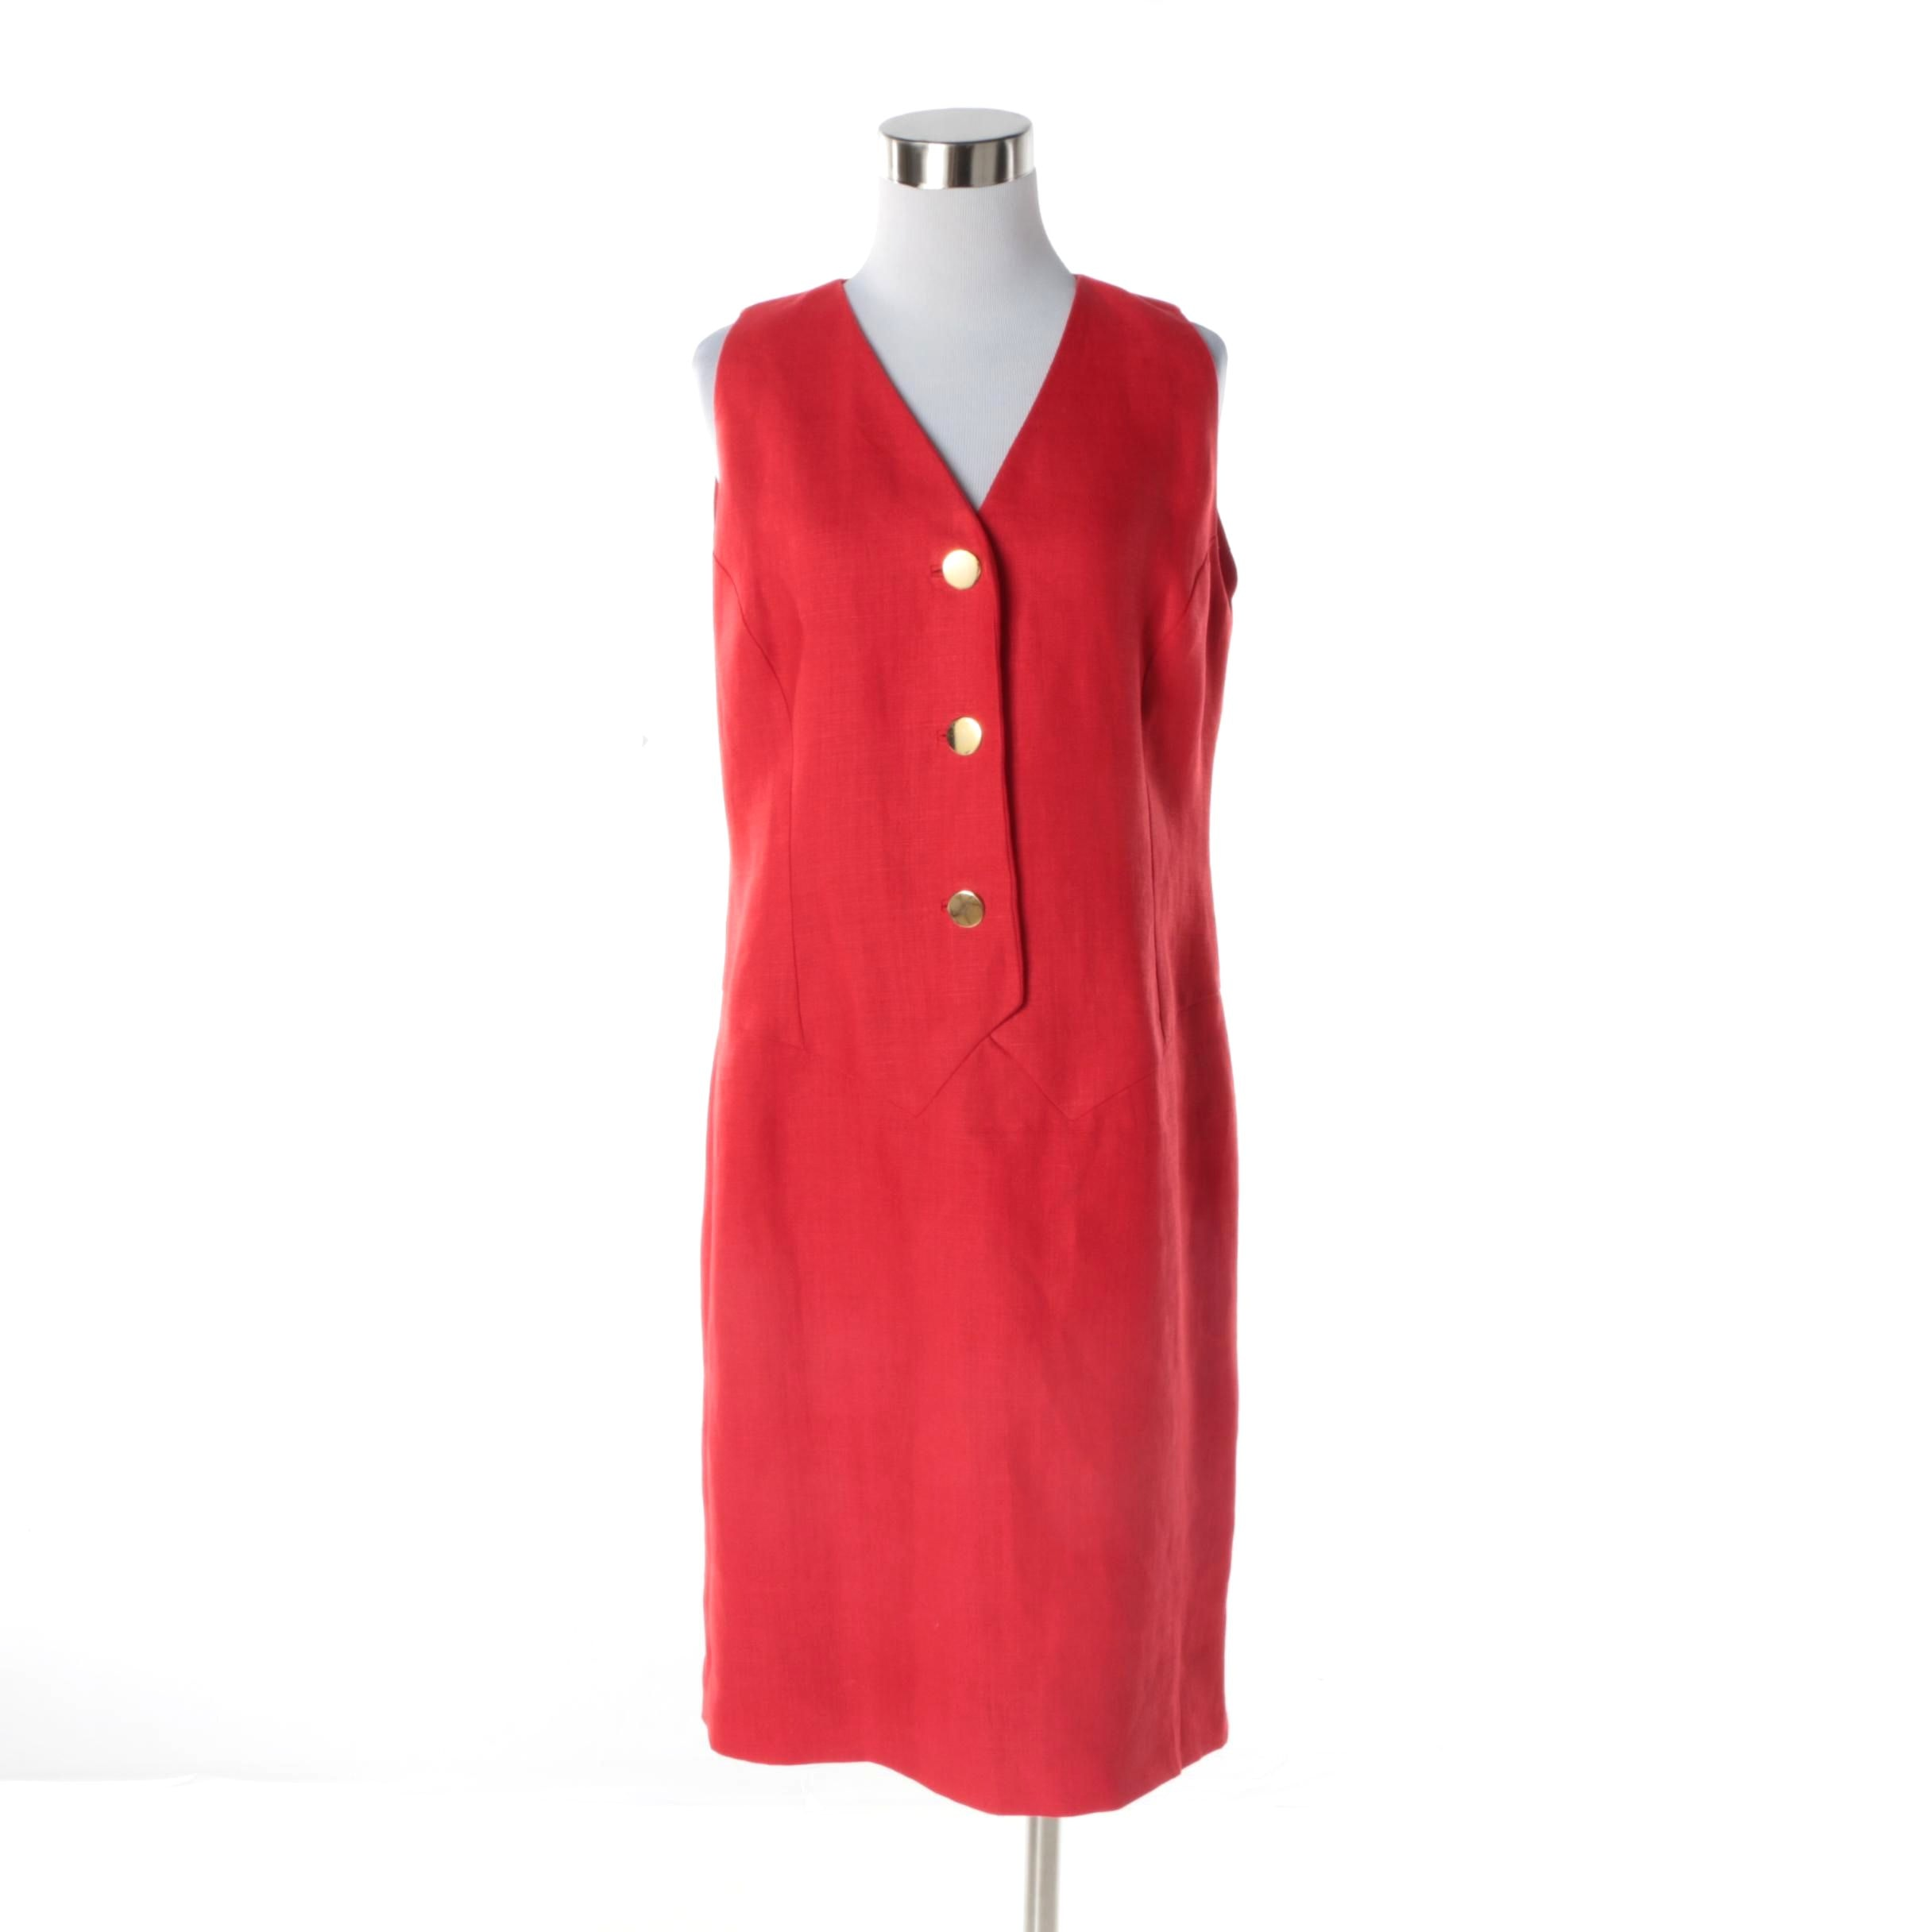 Women's Circa 1980s Vintage Bill Blass Red Linen Sleeveless Dress